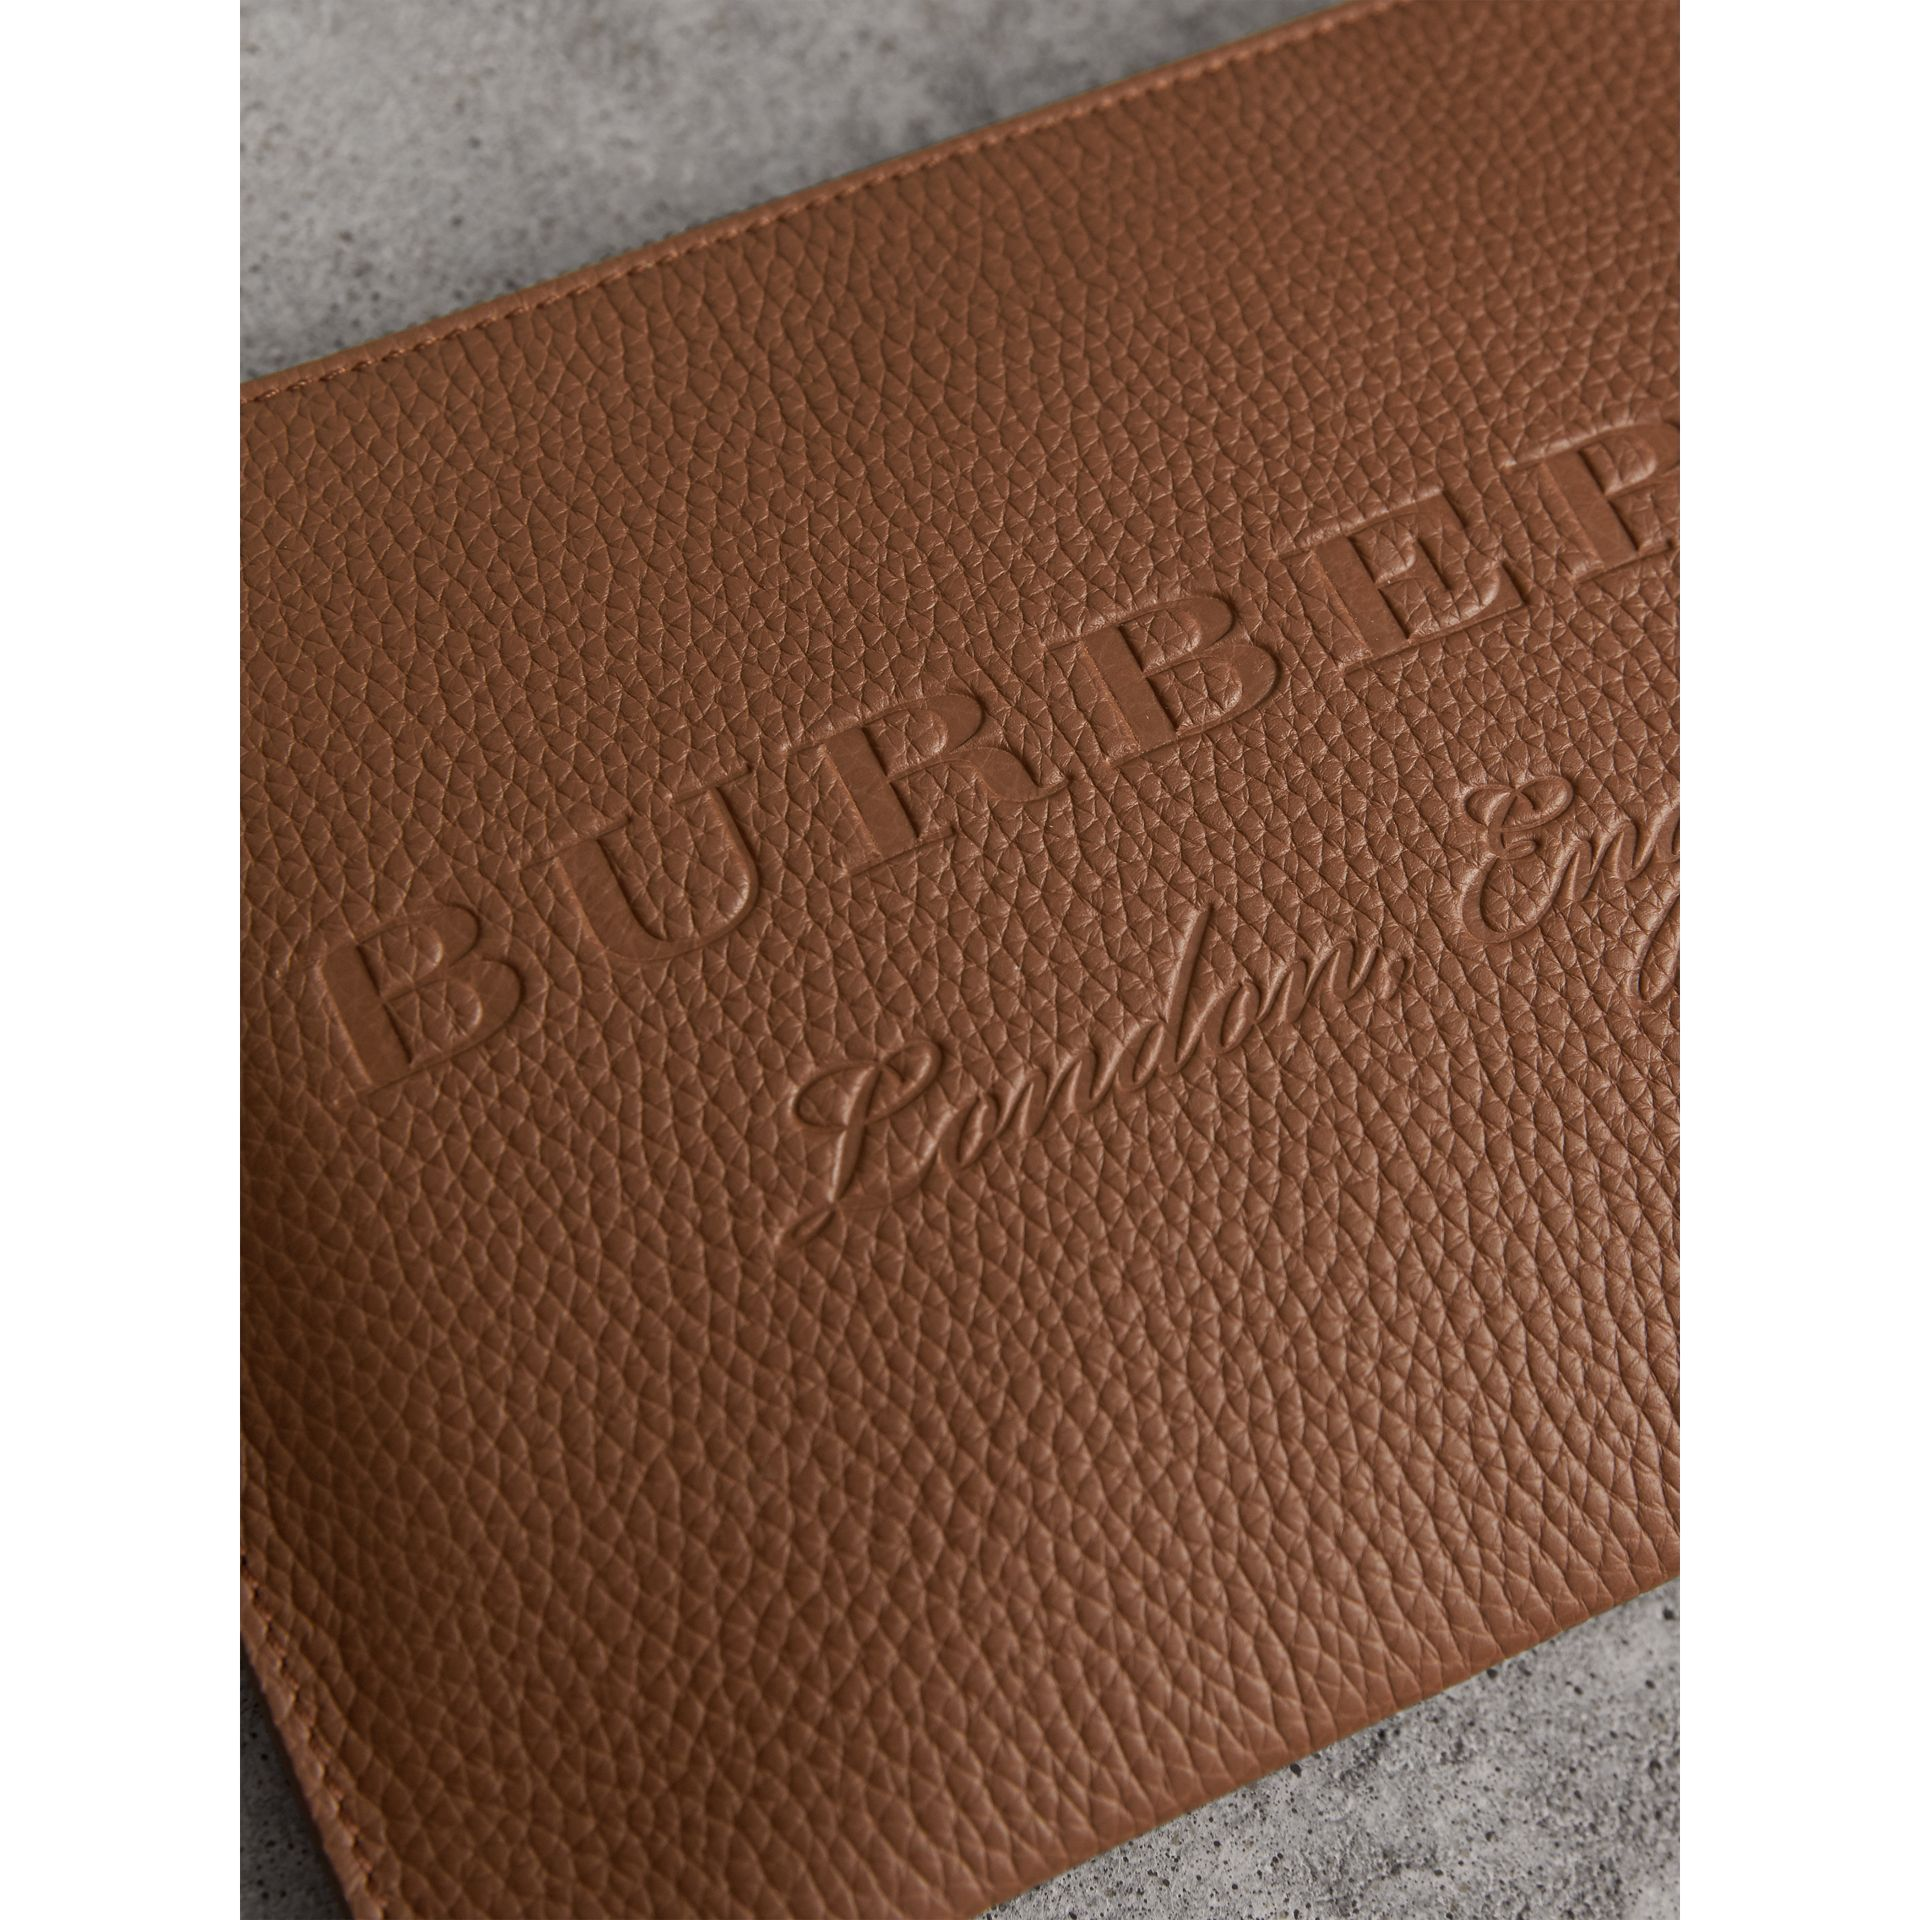 Clutch en cuir estampé (Brun Noisette) - Femme | Burberry Canada - photo de la galerie 1